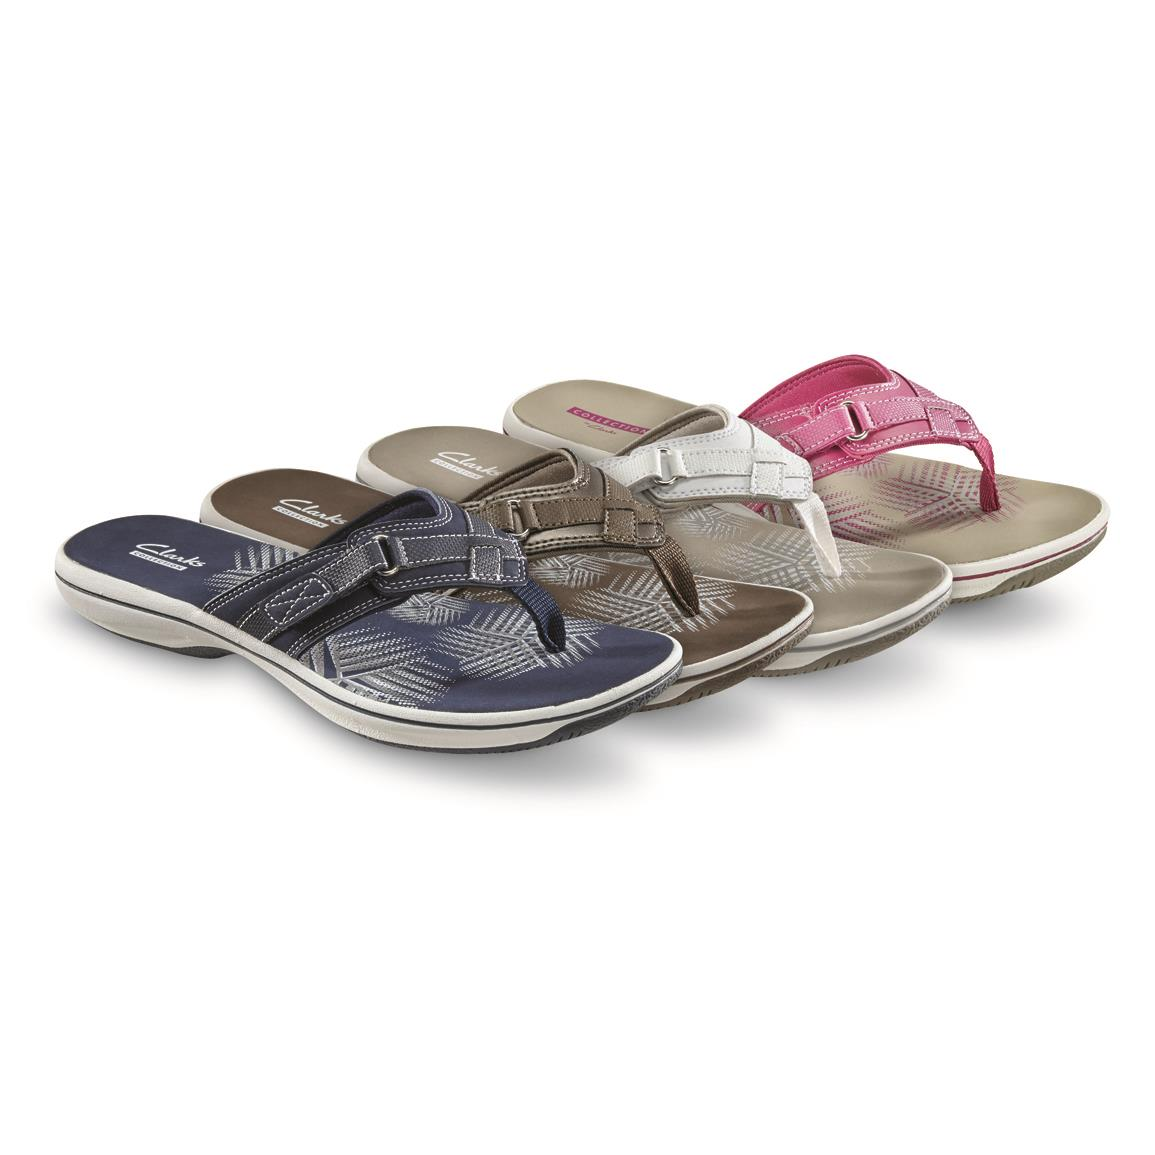 Clarks Women's Breeze Sea Sandals